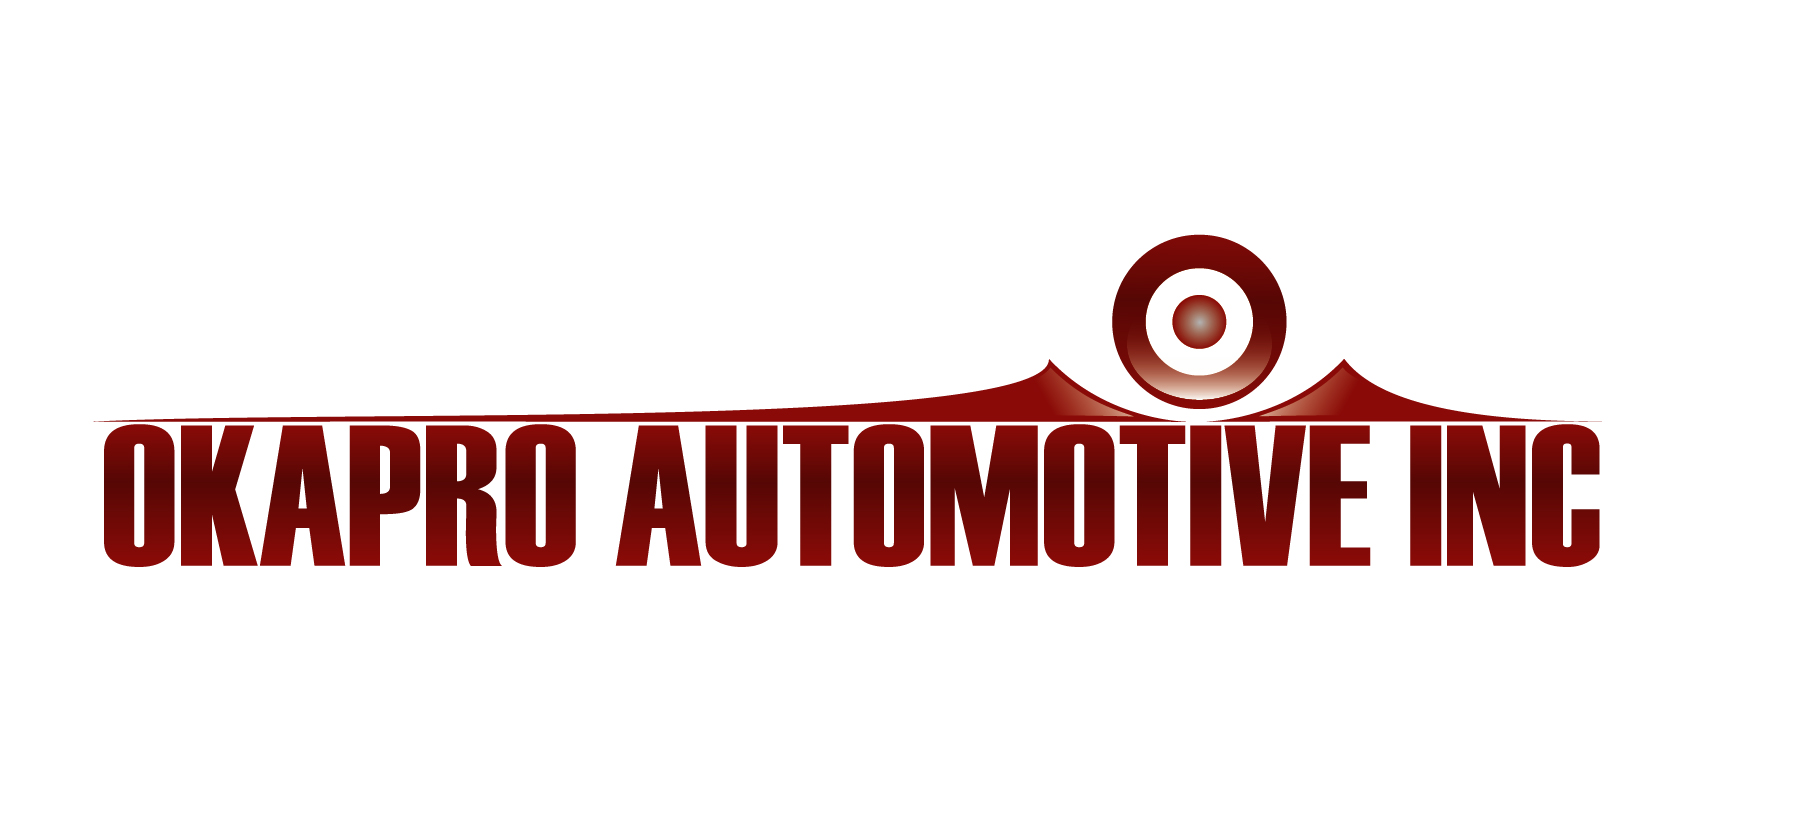 Logo Design by Vasil Boyadzhiev - Entry No. 33 in the Logo Design Contest New Logo Design for Okapro  Automotive  Inc.